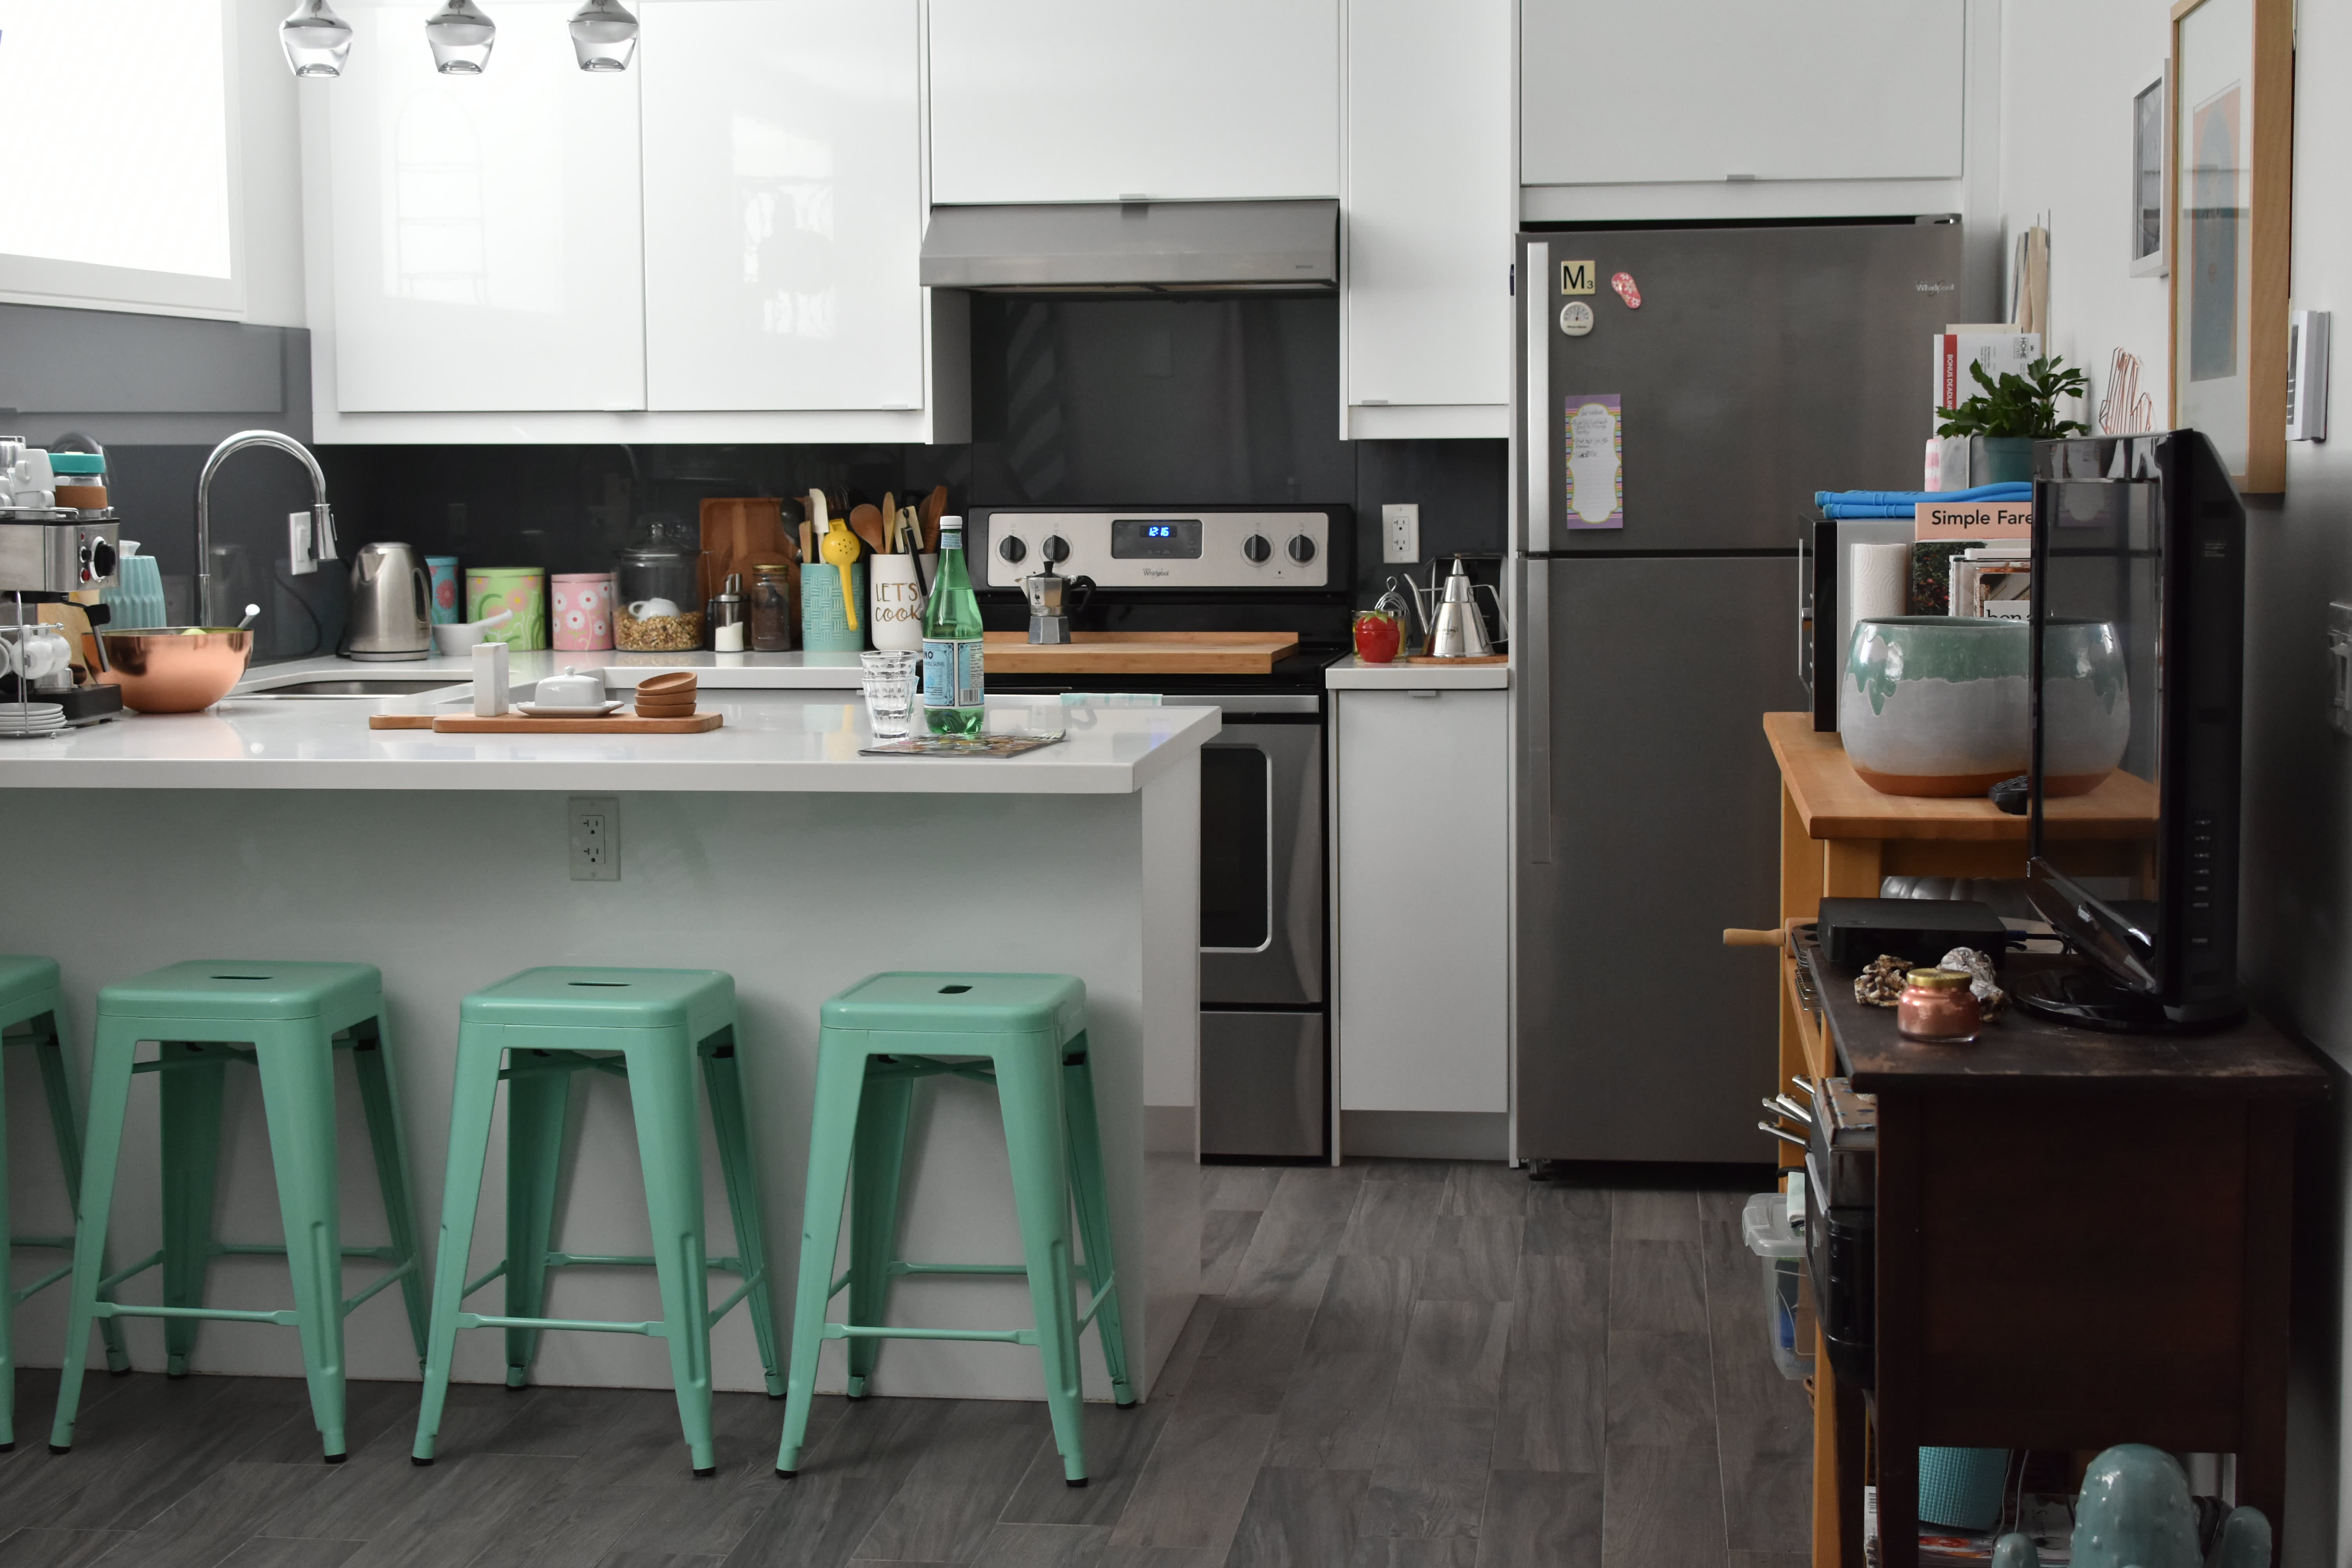 It's Hard to Believe This Cheery, Small Rental Apartment Is In a Basement